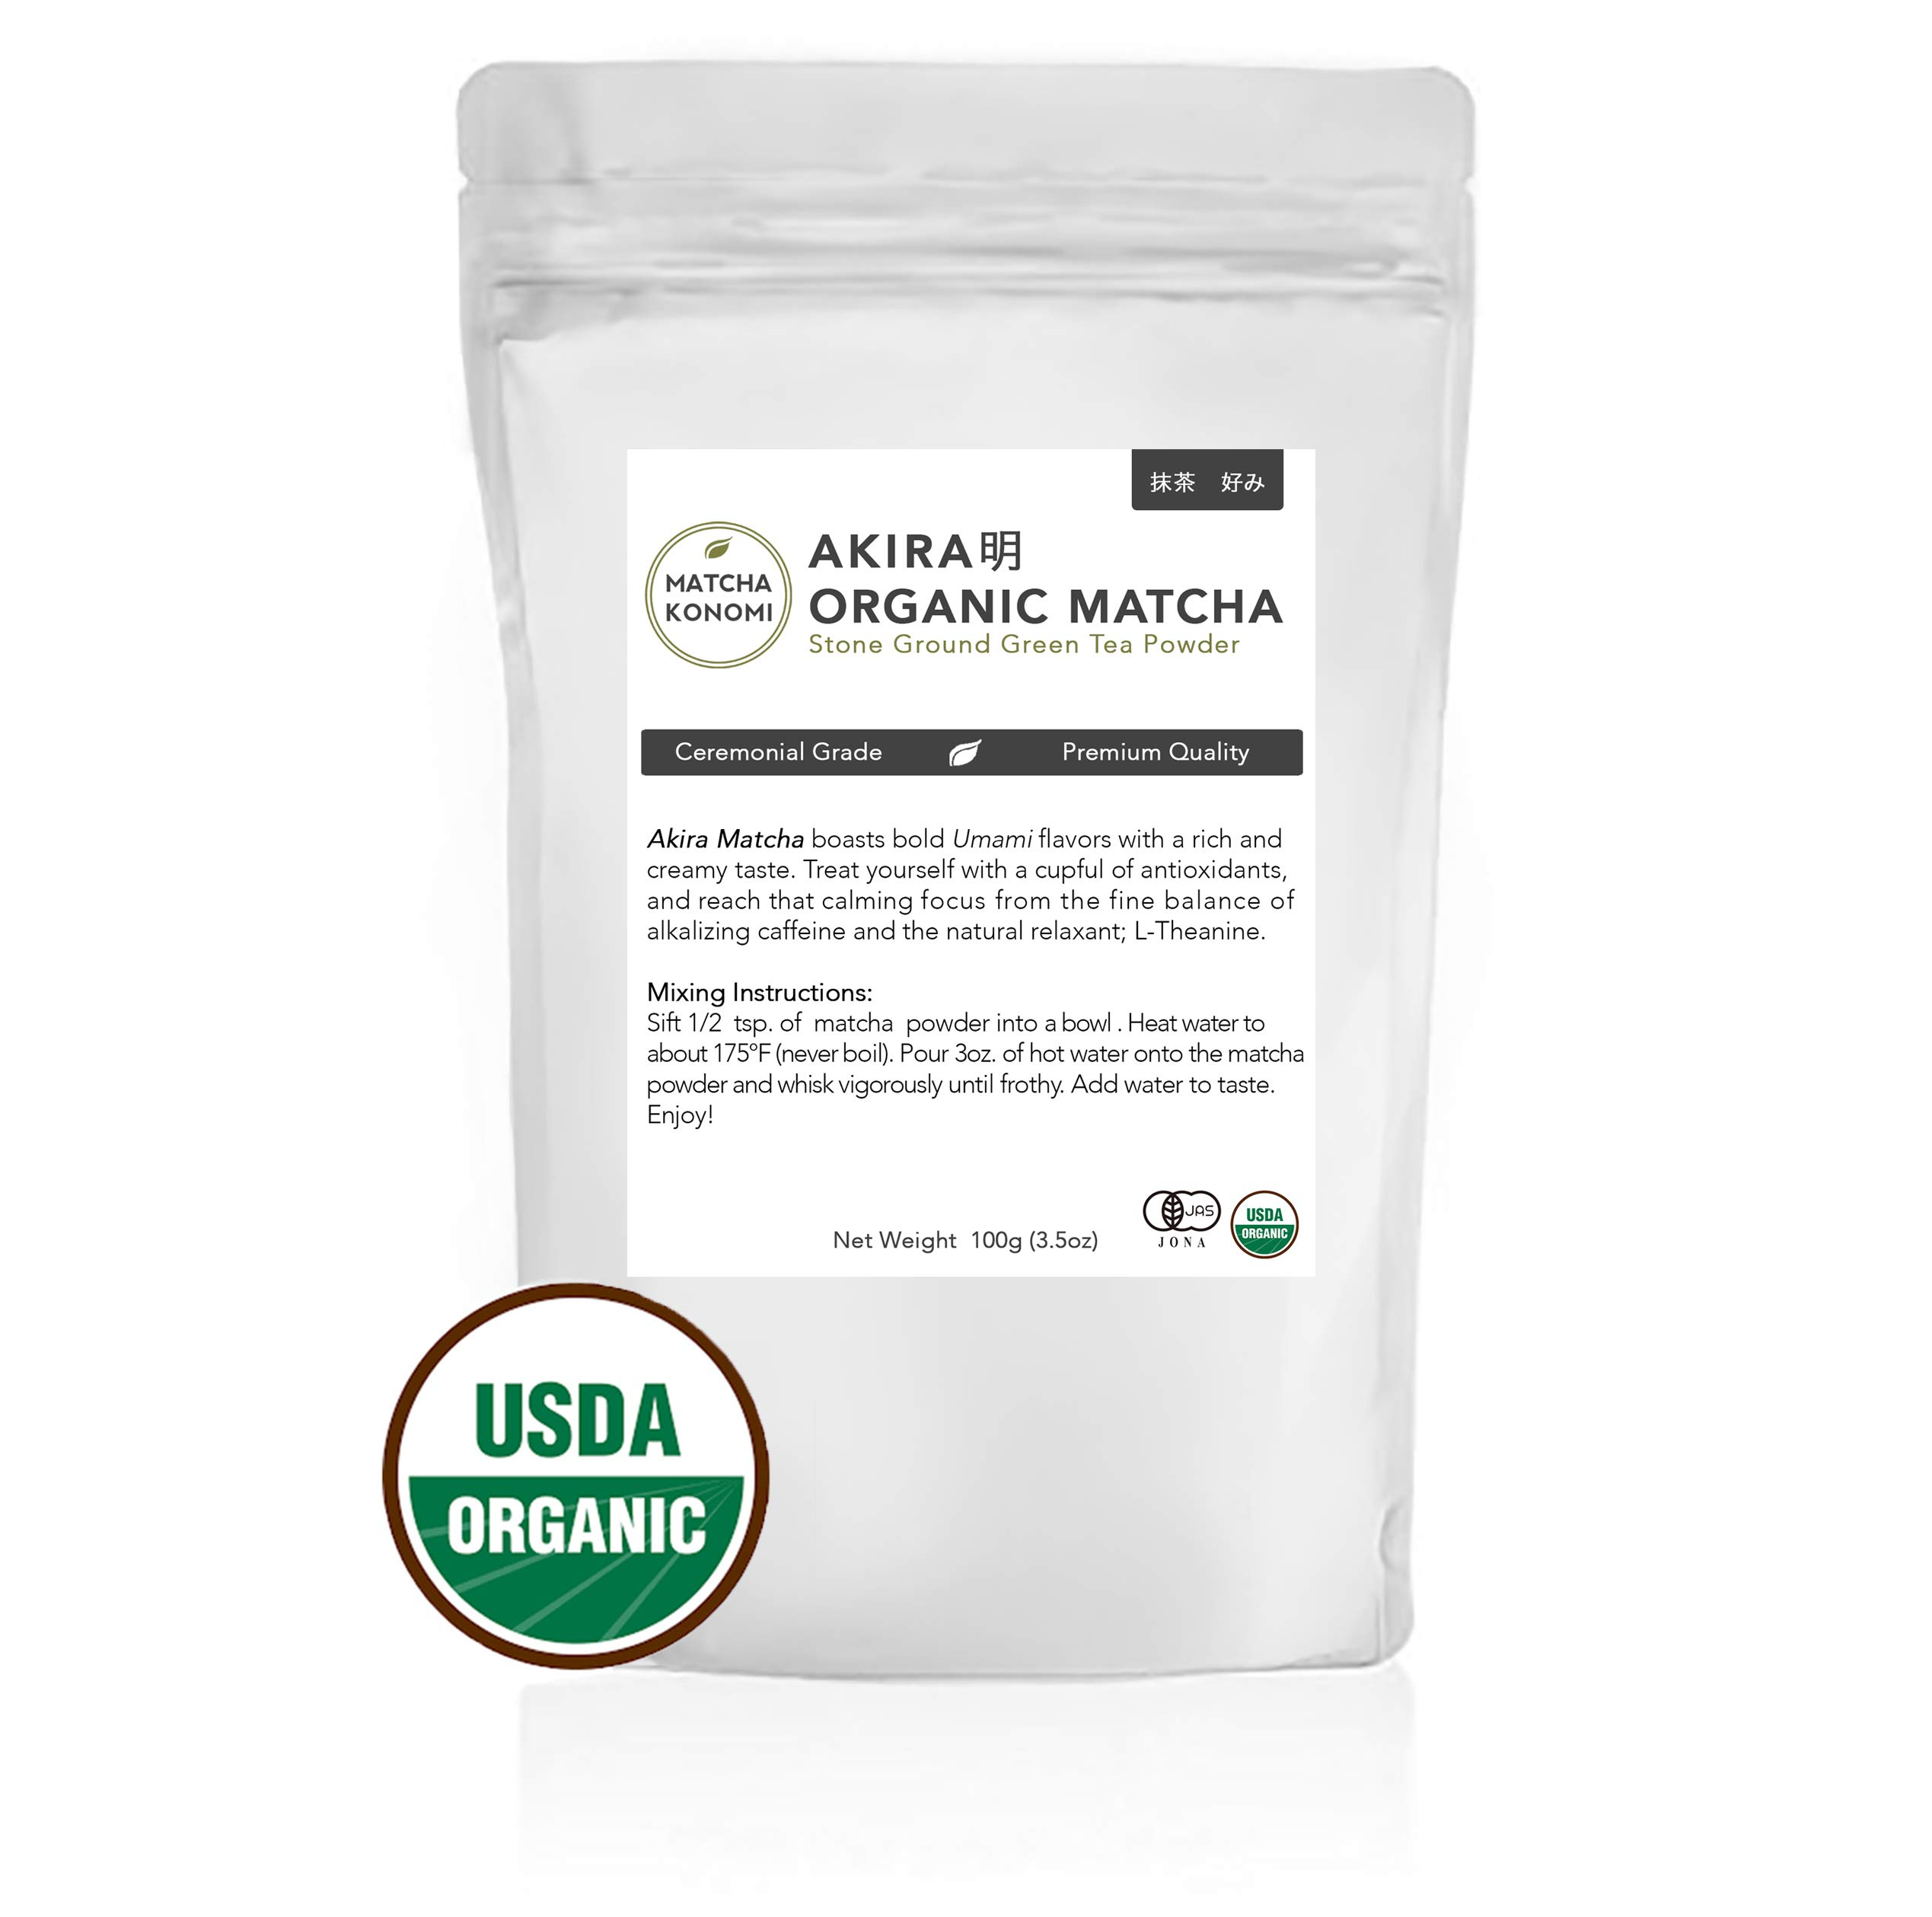 Akira Matcha 100g - Organic Premium Ceremonial Japanese Matcha Green Tea Powder - First Harvest, Radiation Free, No Additives, Zero Sugar - USDA and JAS Certified (3.5oz bag) by Matcha Konomi